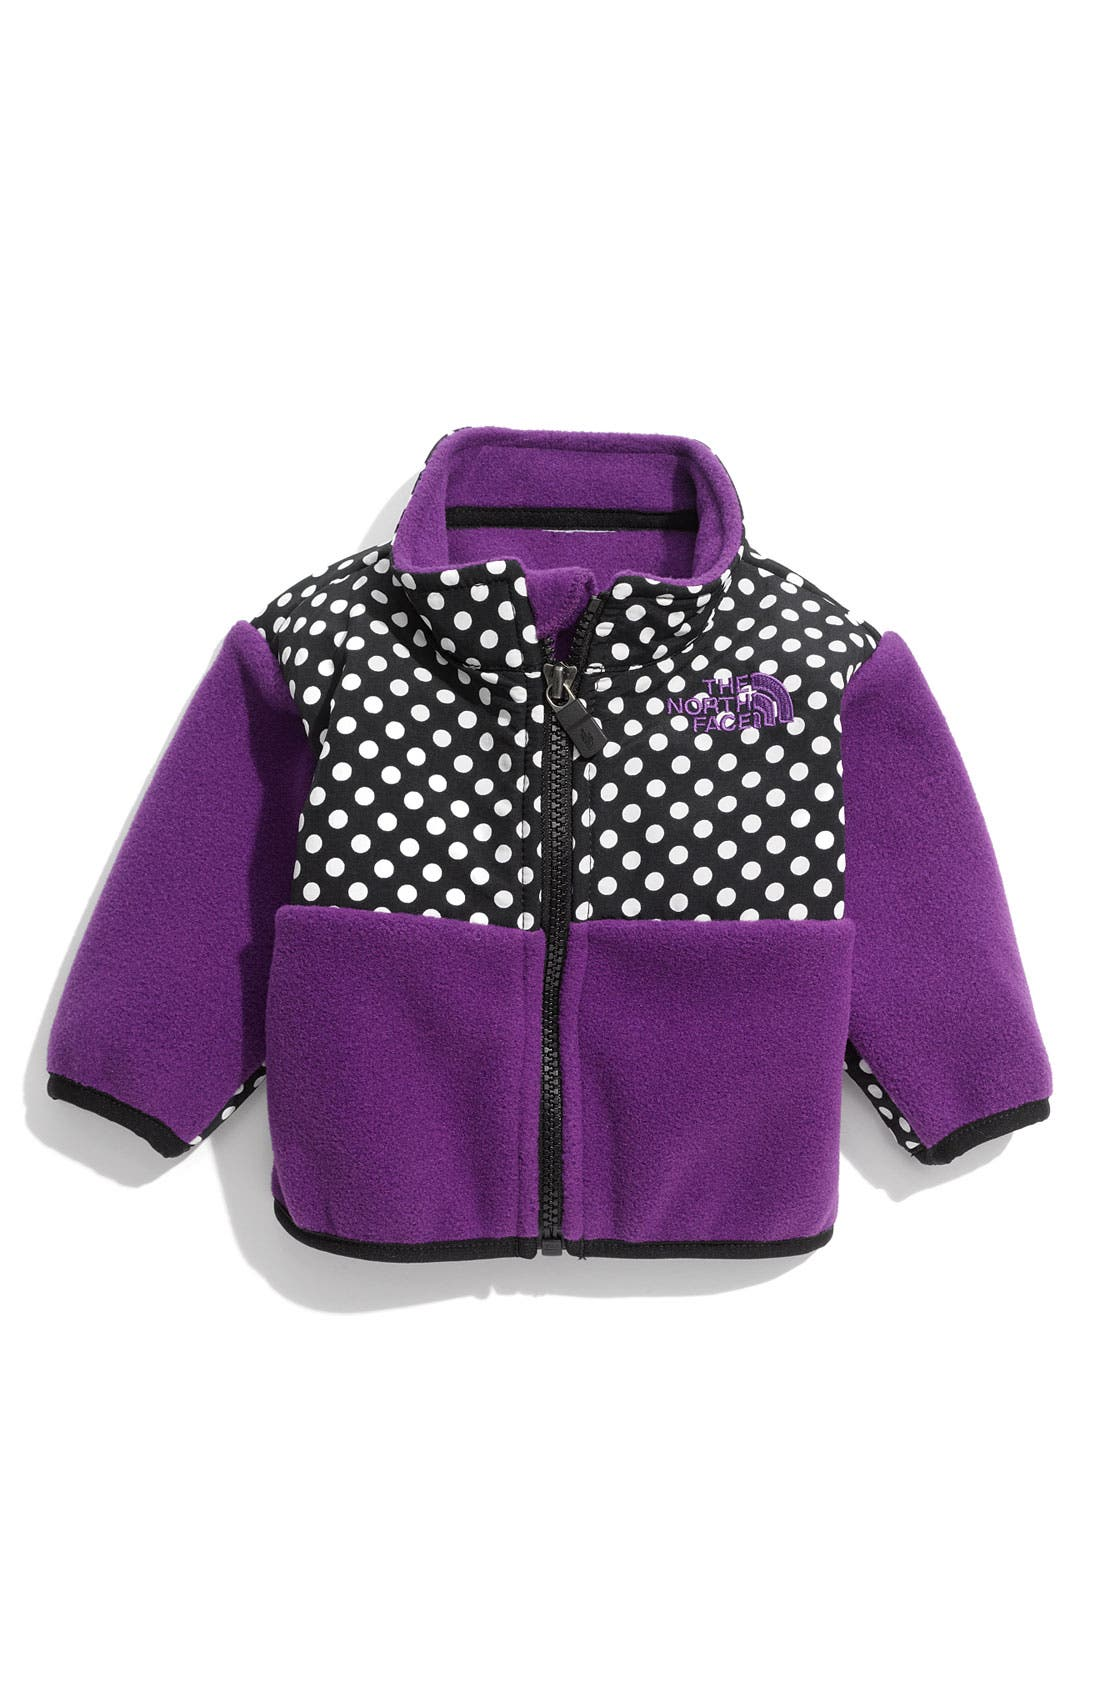 Main Image - The North Face 'Denali' Fleece Jacket (Infant)